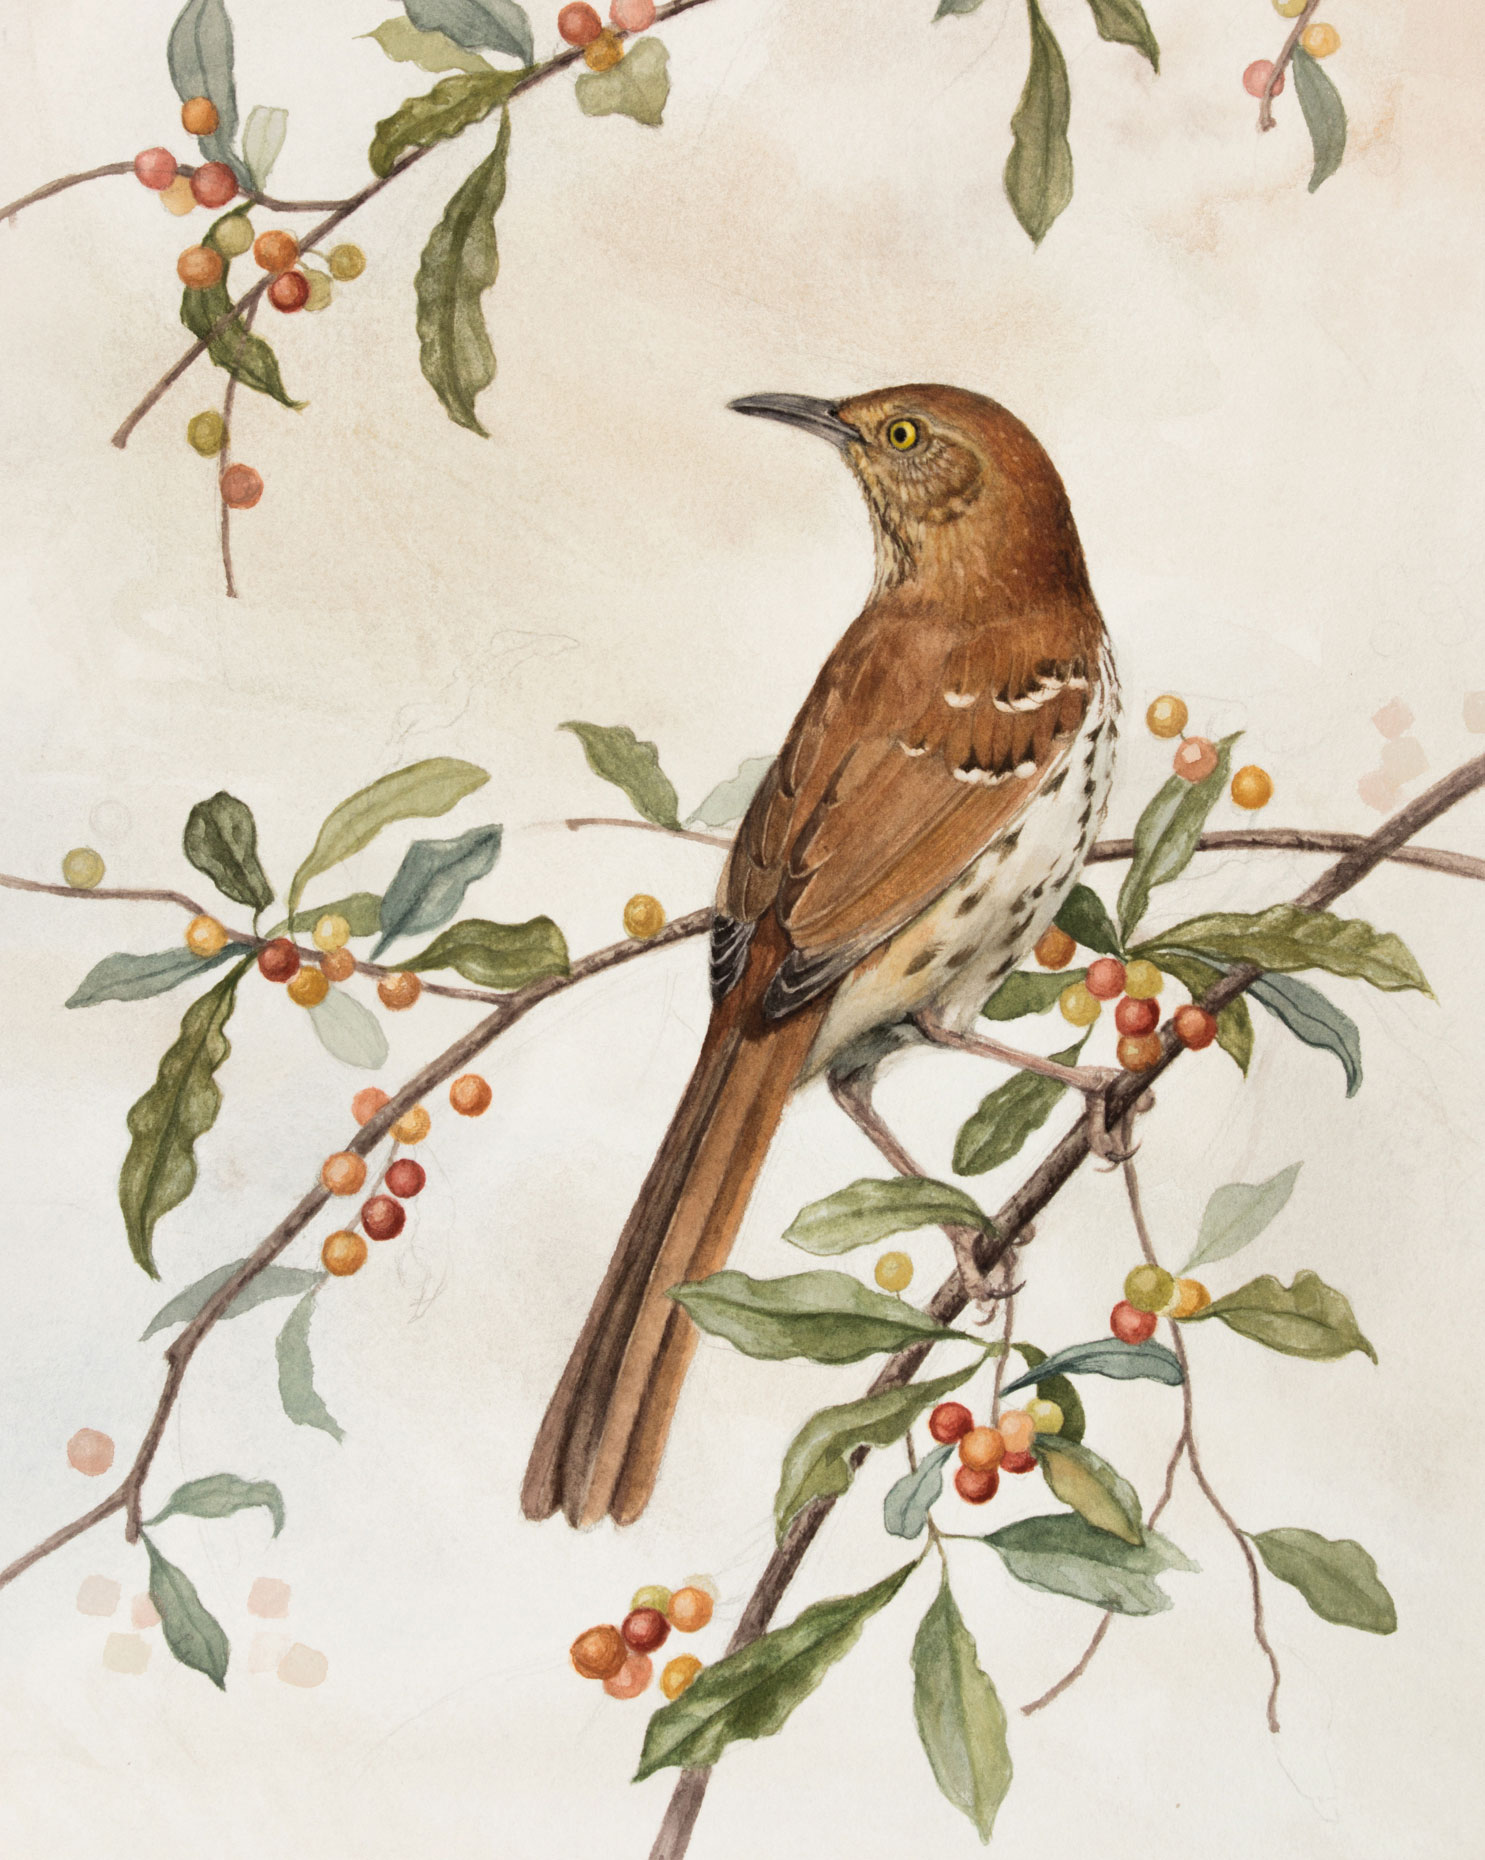 Warnick observed this single nesting Brown Thrasher over several months while she was an artist in residence at the Muscatatuck National Wildlife Refuge in Indiana. Drawing: Alex Warnick